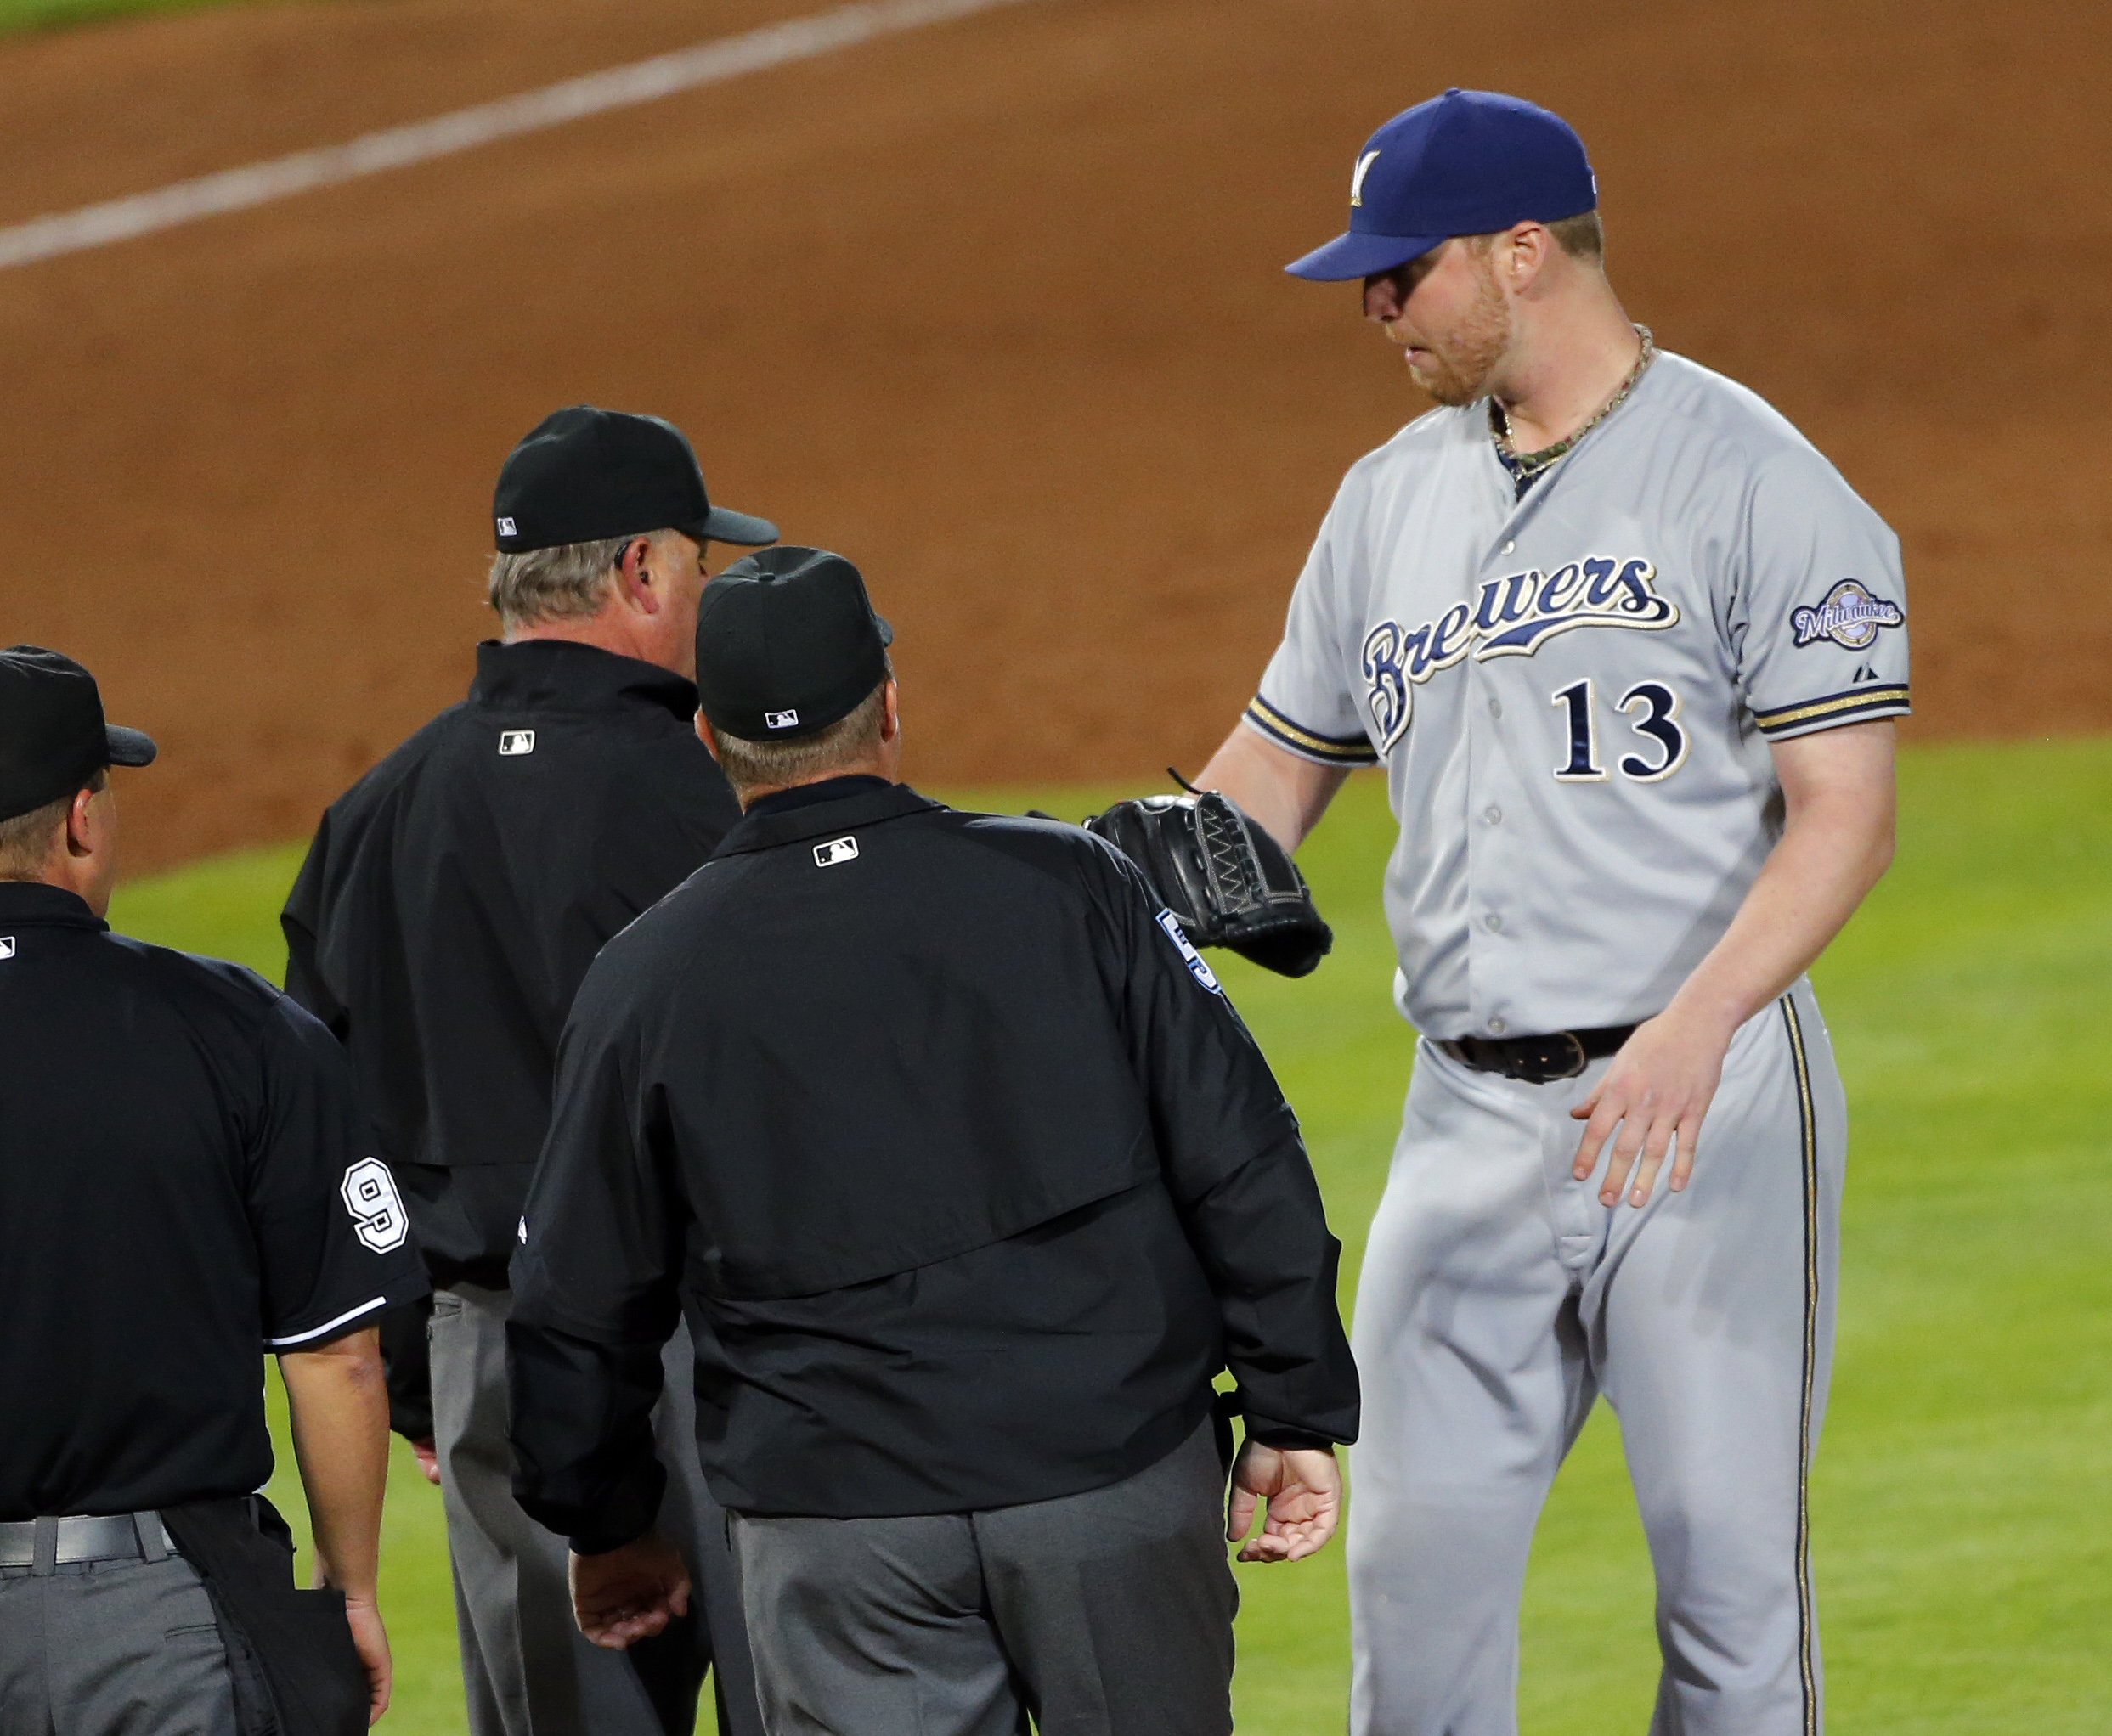 Milwaukee Brewers relief pitcher Will Smith (13) has his glove and arm examined by the umpiring crew before being ejected during the seventh inning of a baseball game against the Atlanta Braves on Thursday, May 21, 2015, in Atlanta. (AP Photo/John Bazemor